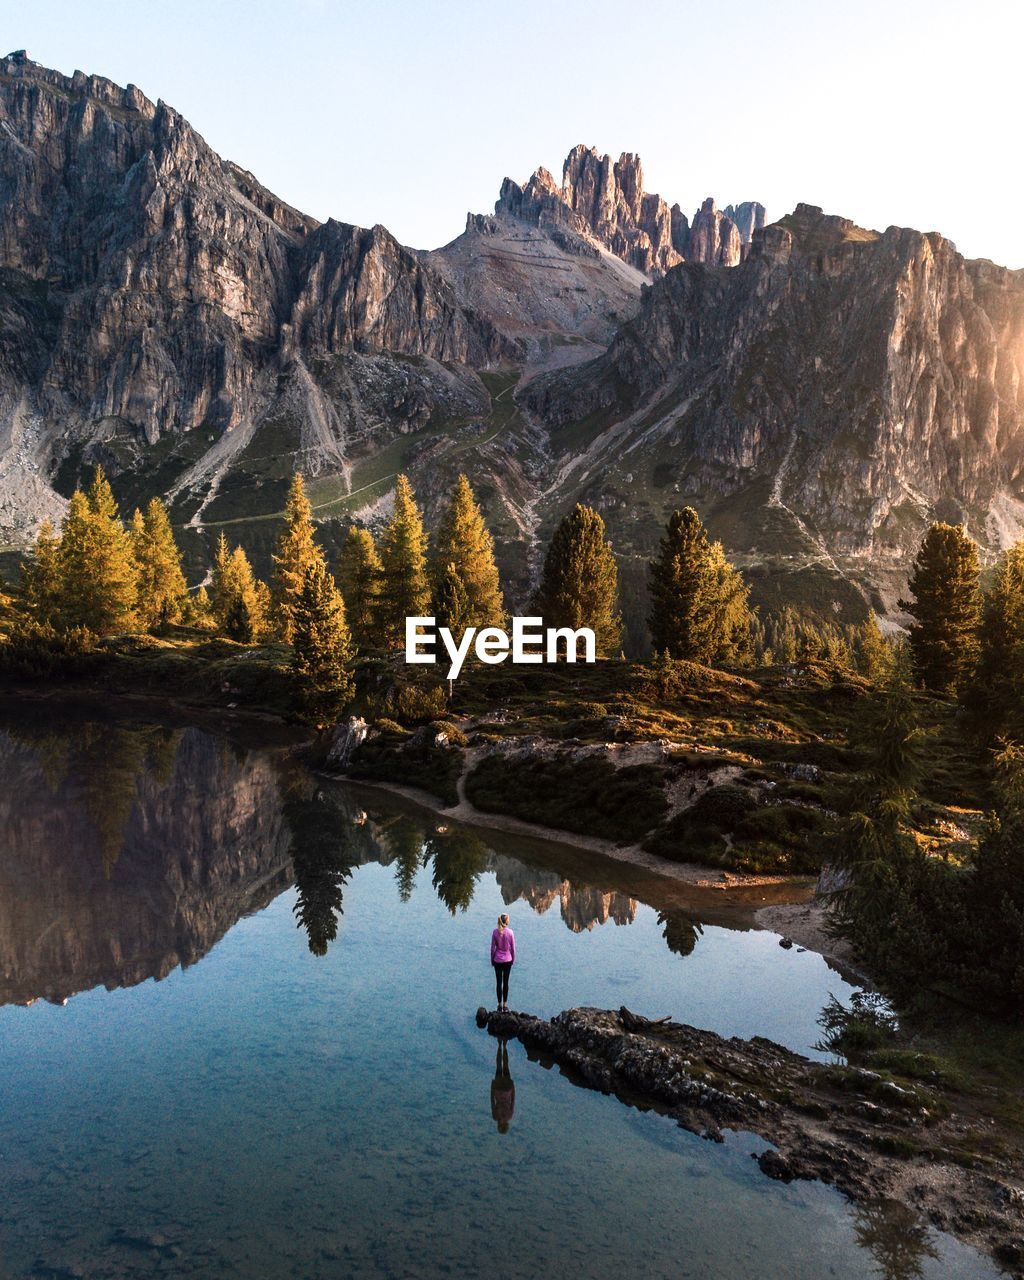 REFLECTION OF MAN IN LAKE AGAINST MOUNTAIN